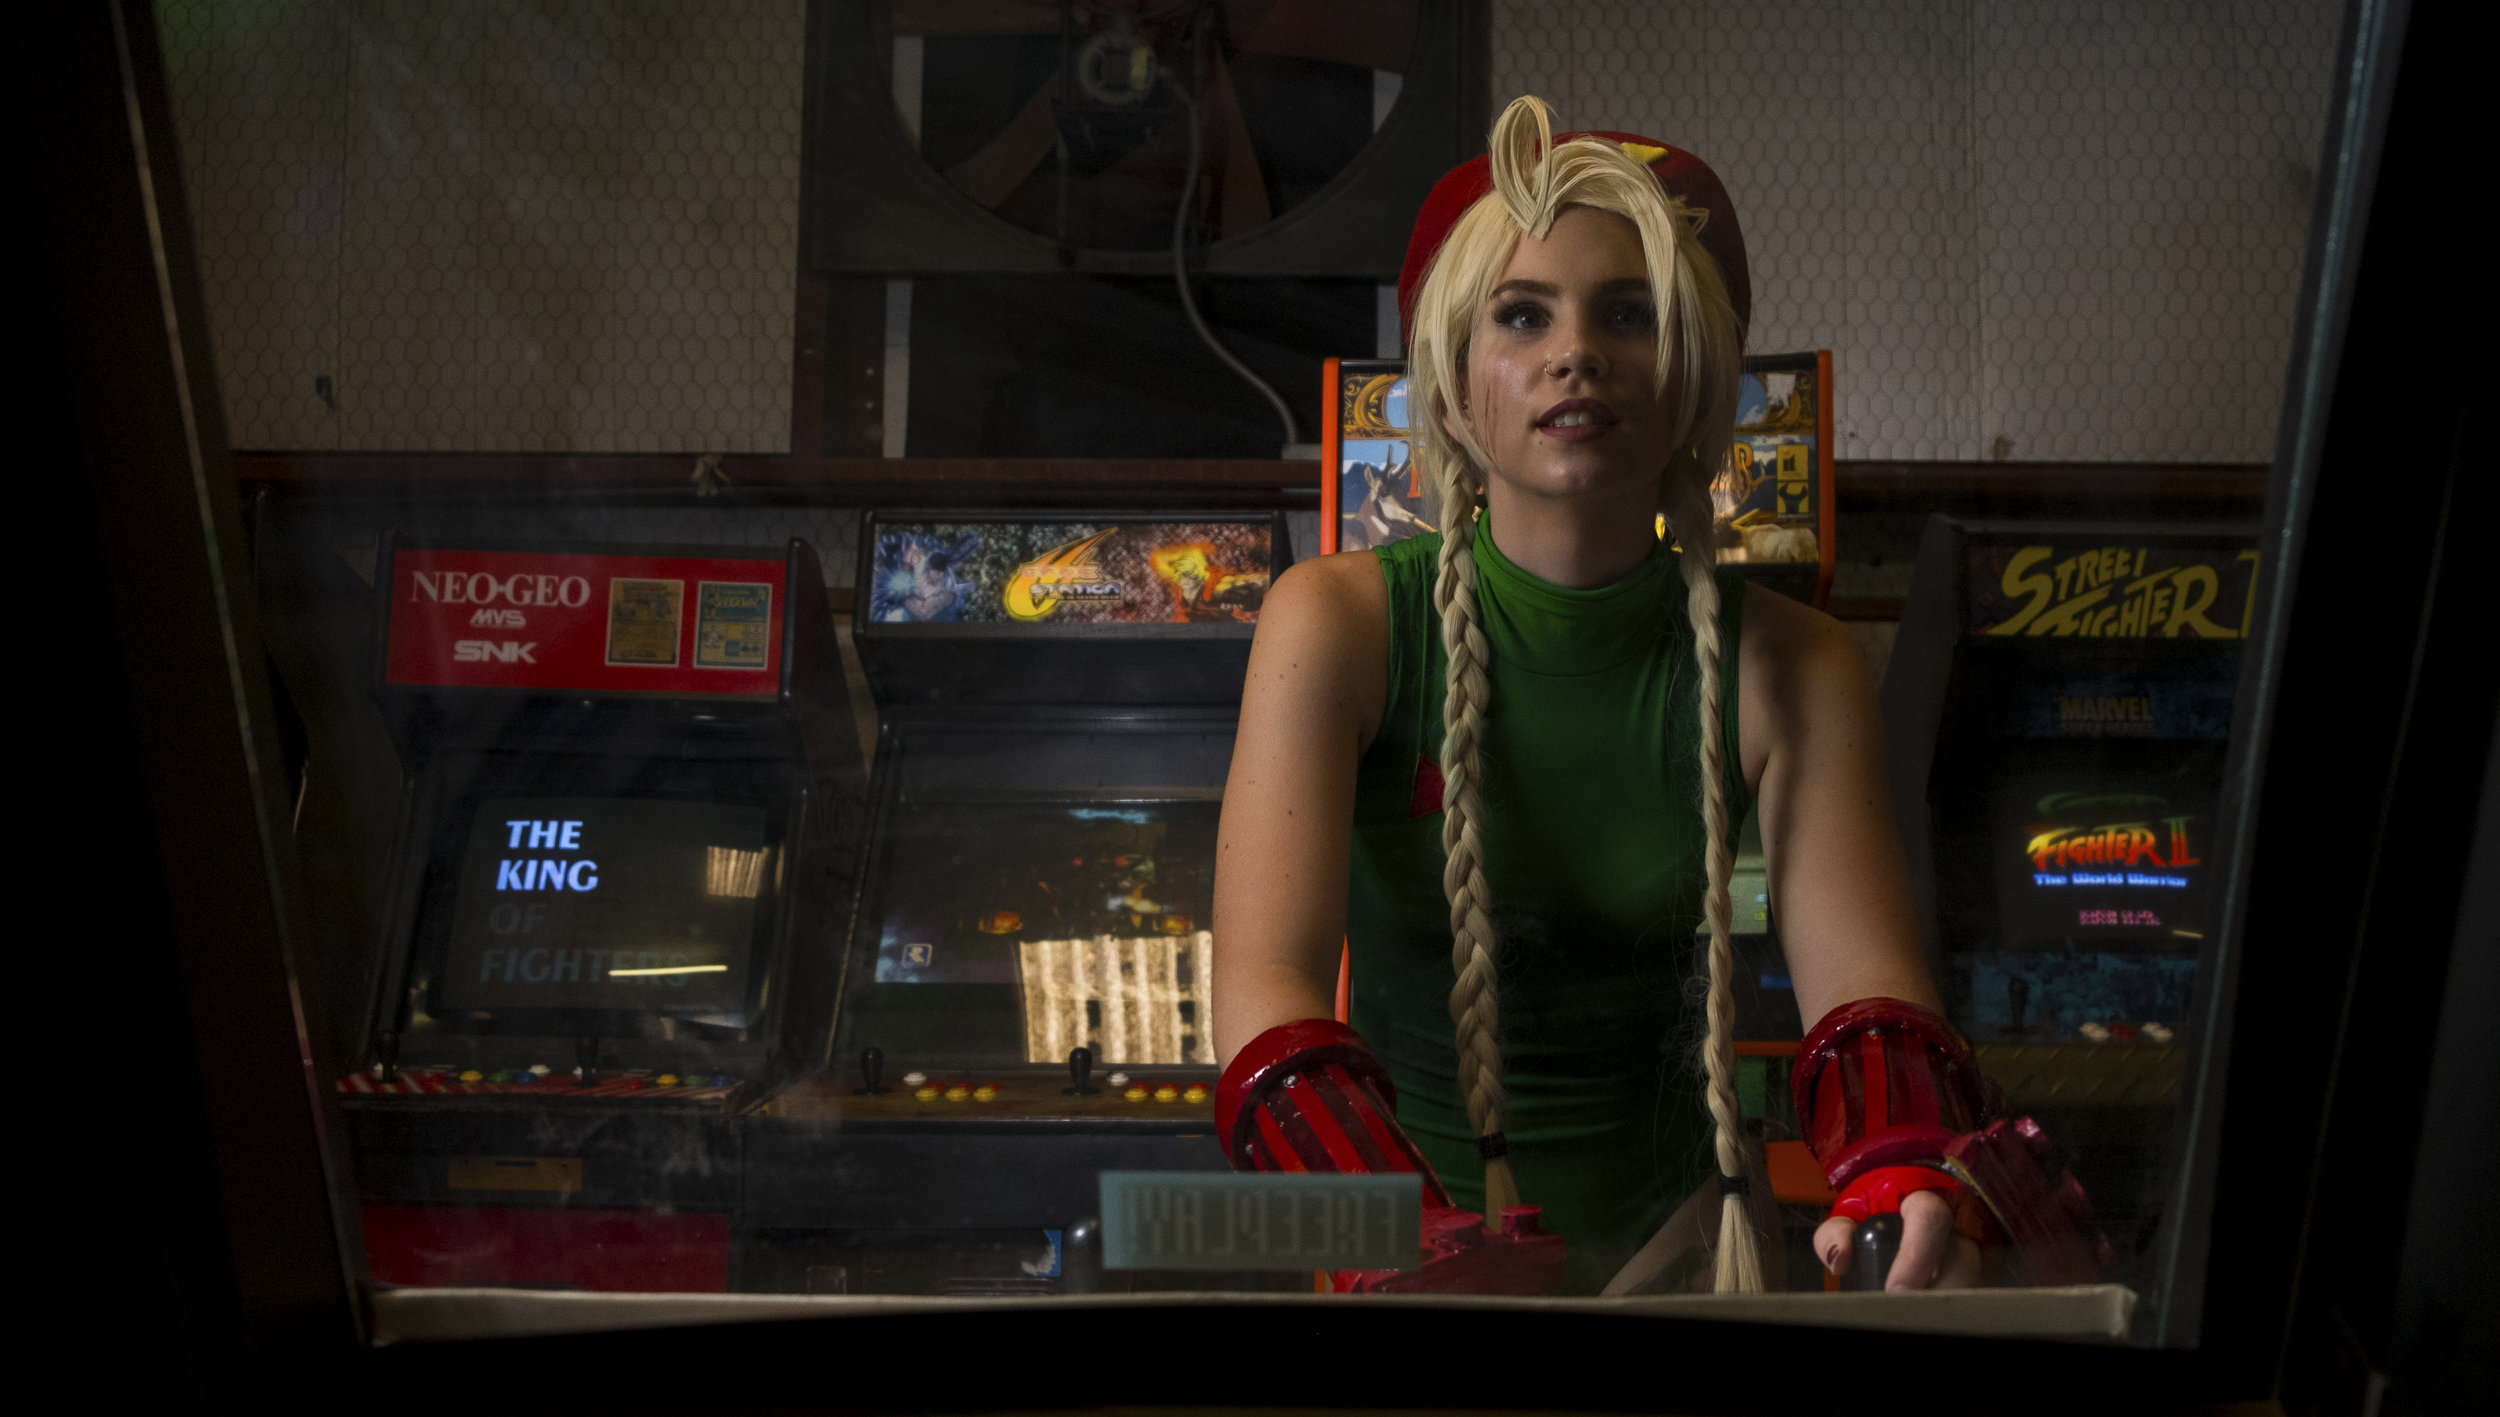 Lilfaun Cosplay in Cammy cosplay at Texas Gamers Lounge